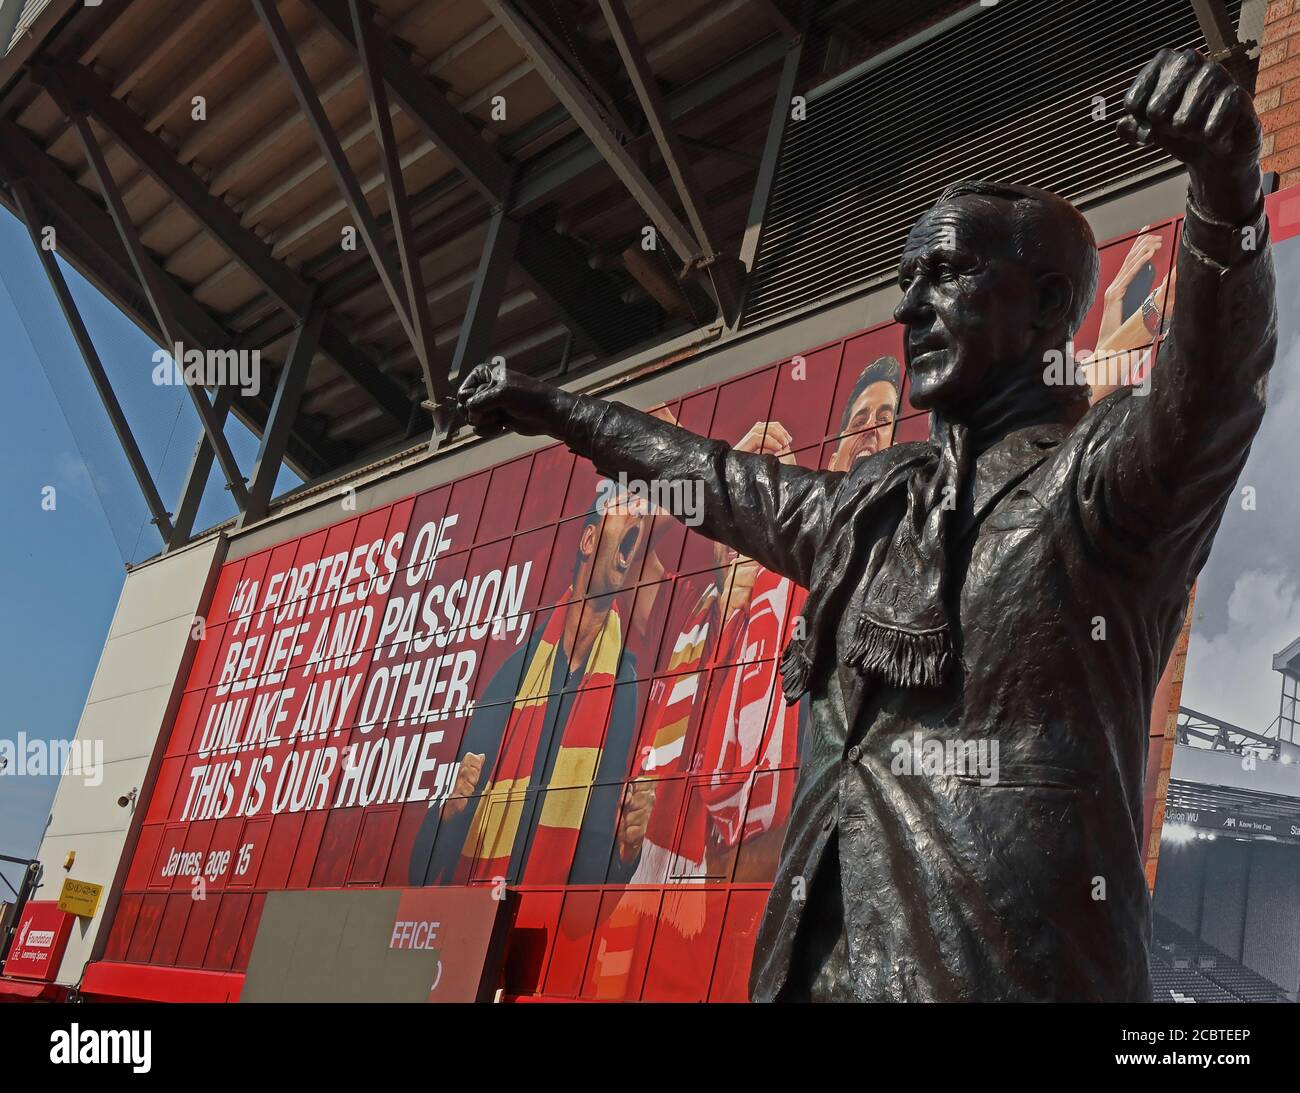 GoTonySmith,HotpixUK,@HotpixUK,England,UK,Britain,Great Britain,Liverpool,city centre,Merseyside,L4,Ground,Stadia,Stadium,Youll Never walk alone,Never Walk alone,reds,the reds,football,Premier League,statue,bronze,William Shankly,OBE,manager,arms,stretched,outstretched,LFC Manager